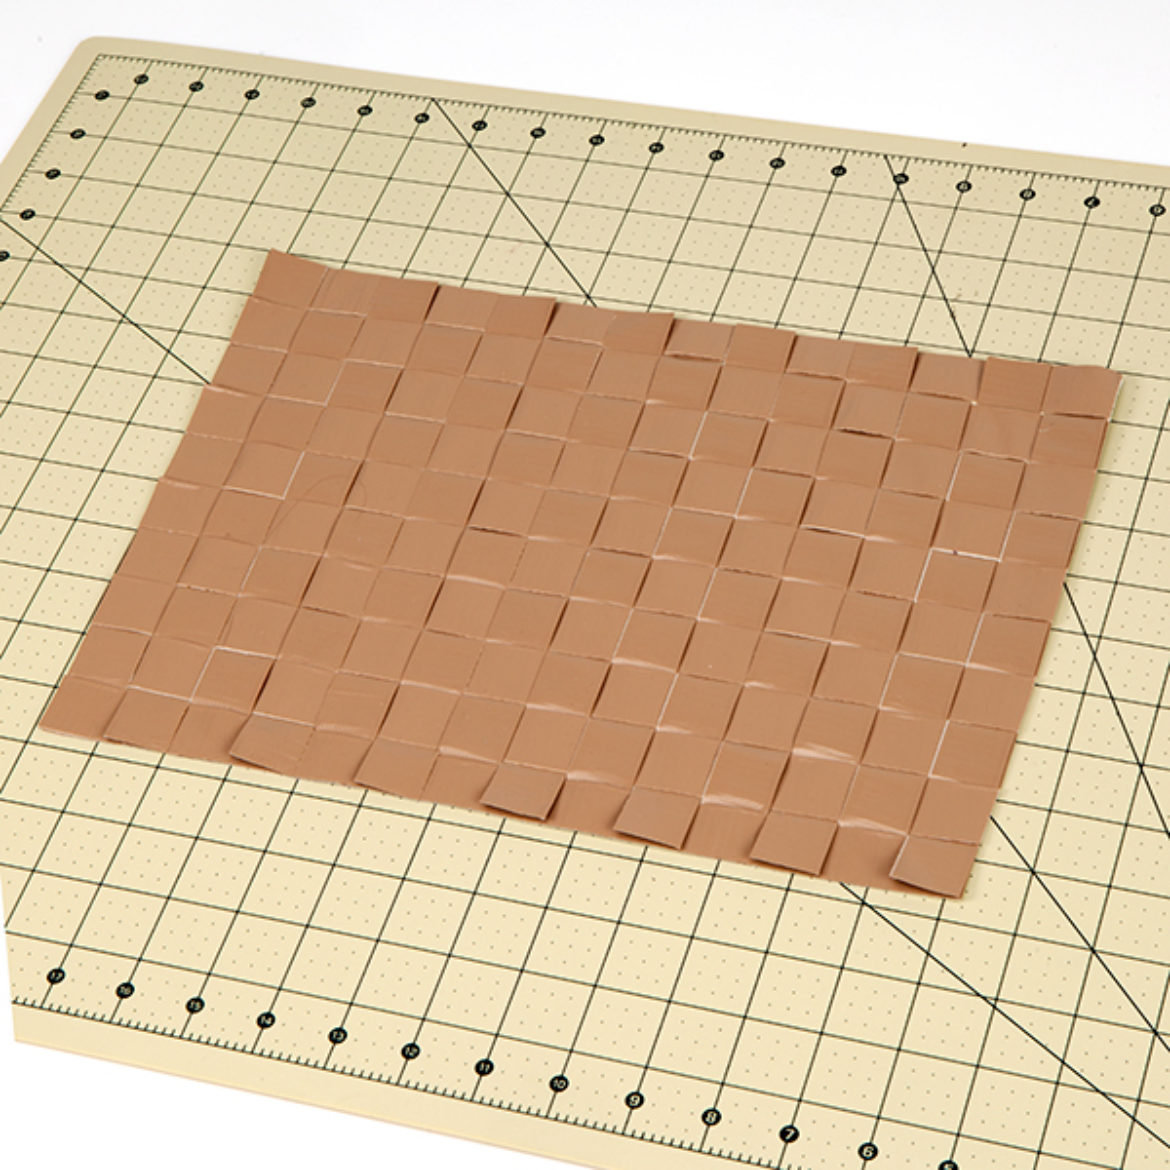 Woven mat laid on top of the sticky sheet